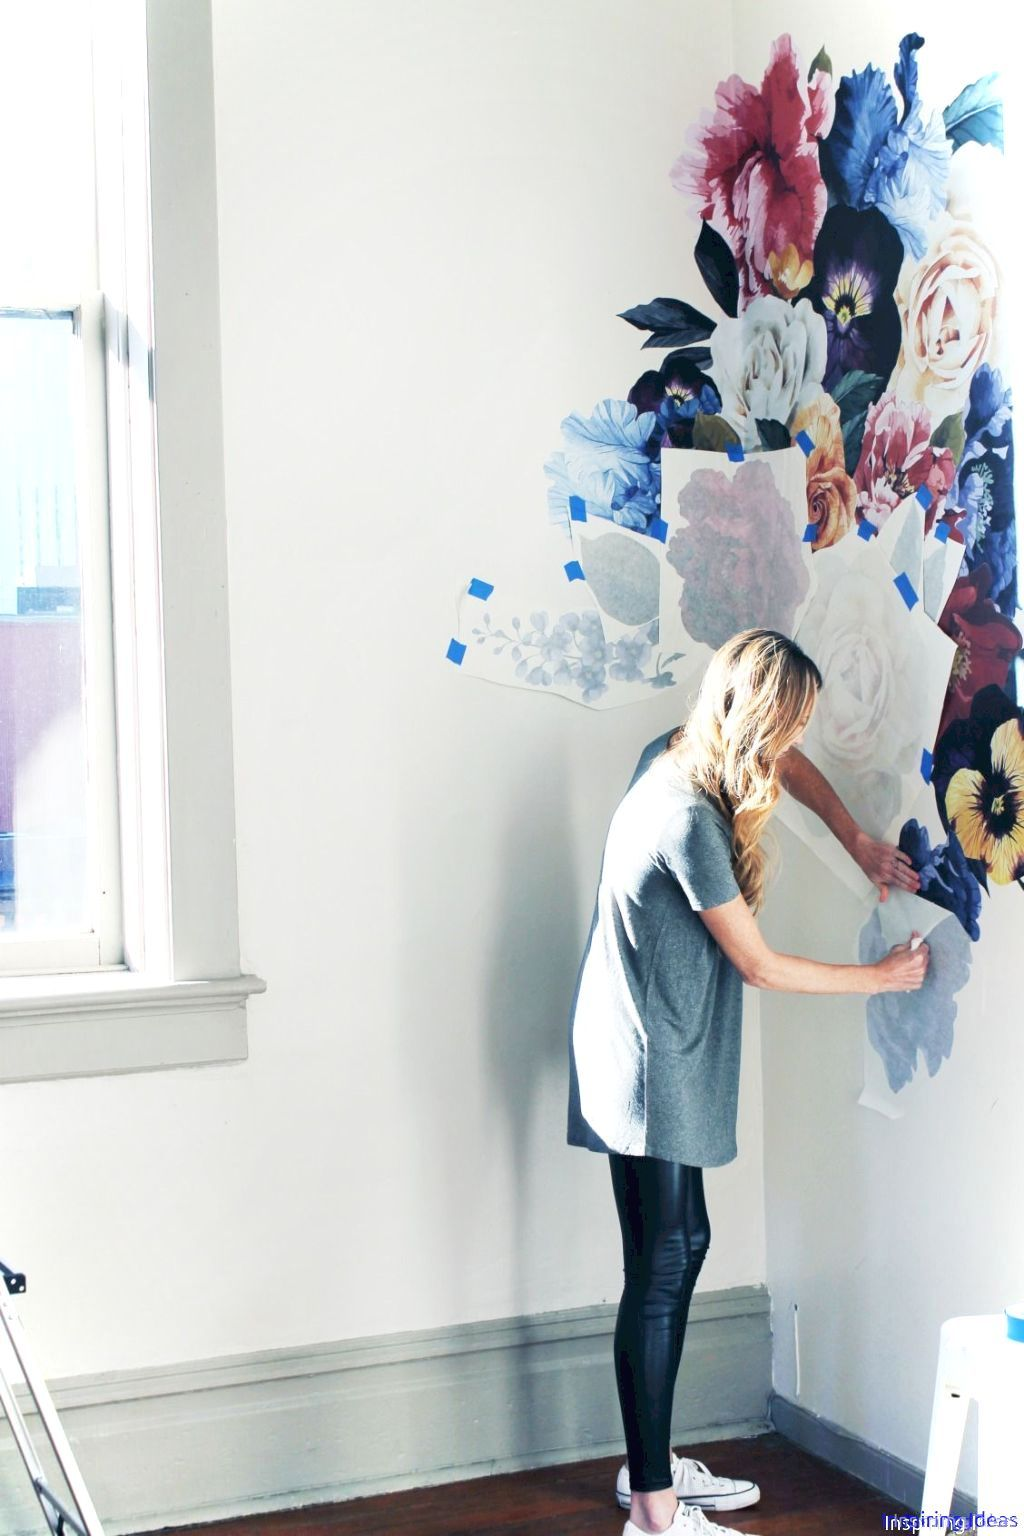 69 Artsy Wall Painting ideas for Your Home | Wall paintings, Artsy ...